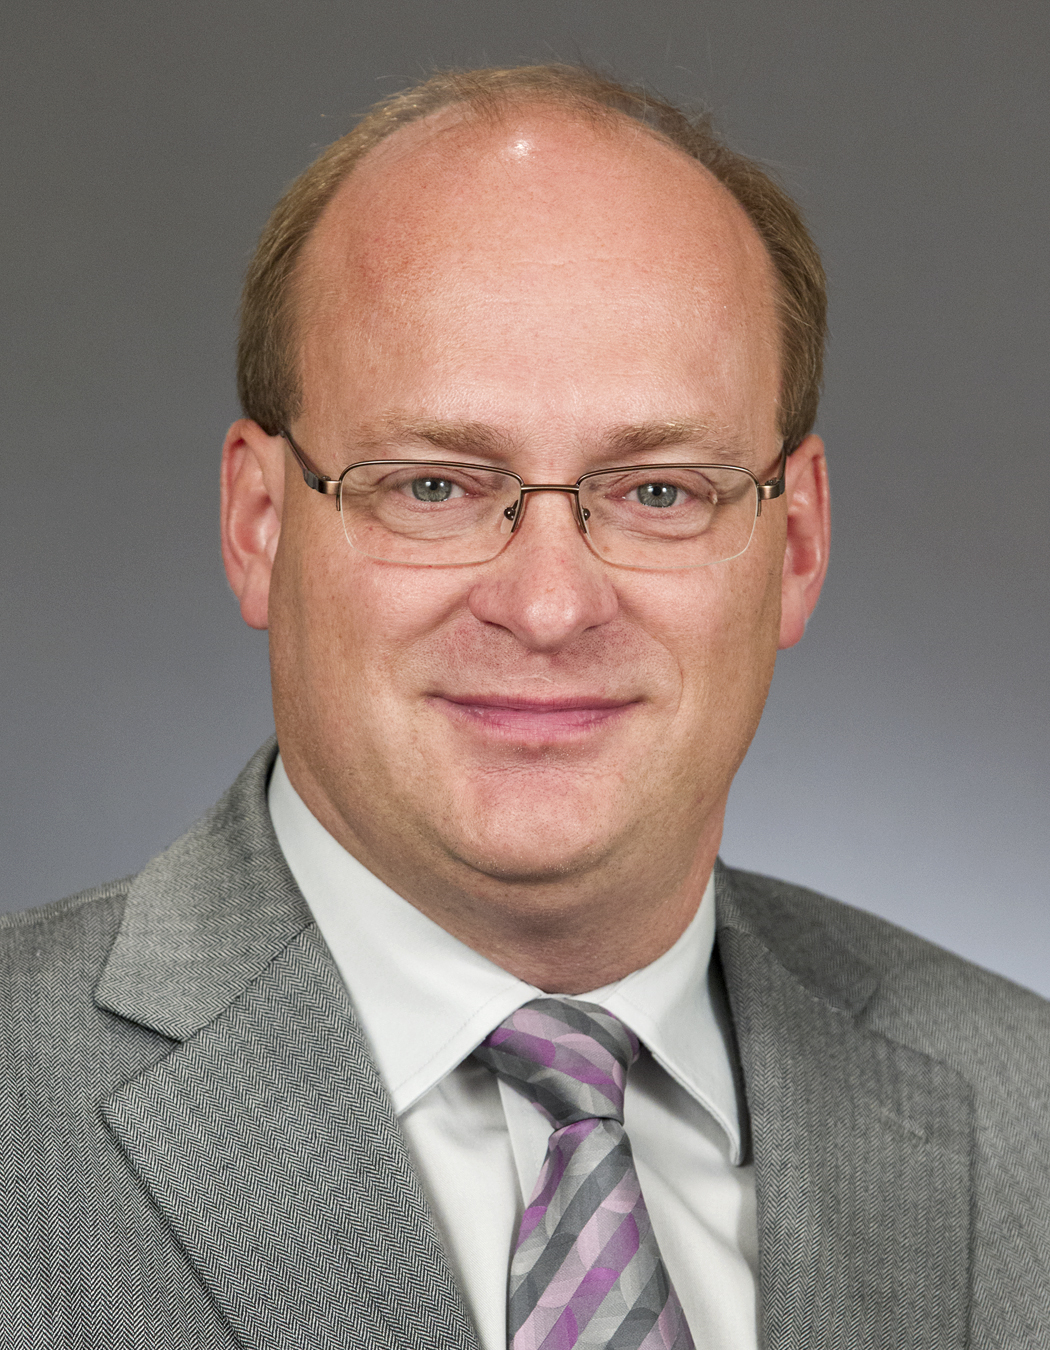 Rep. Jeff Backer